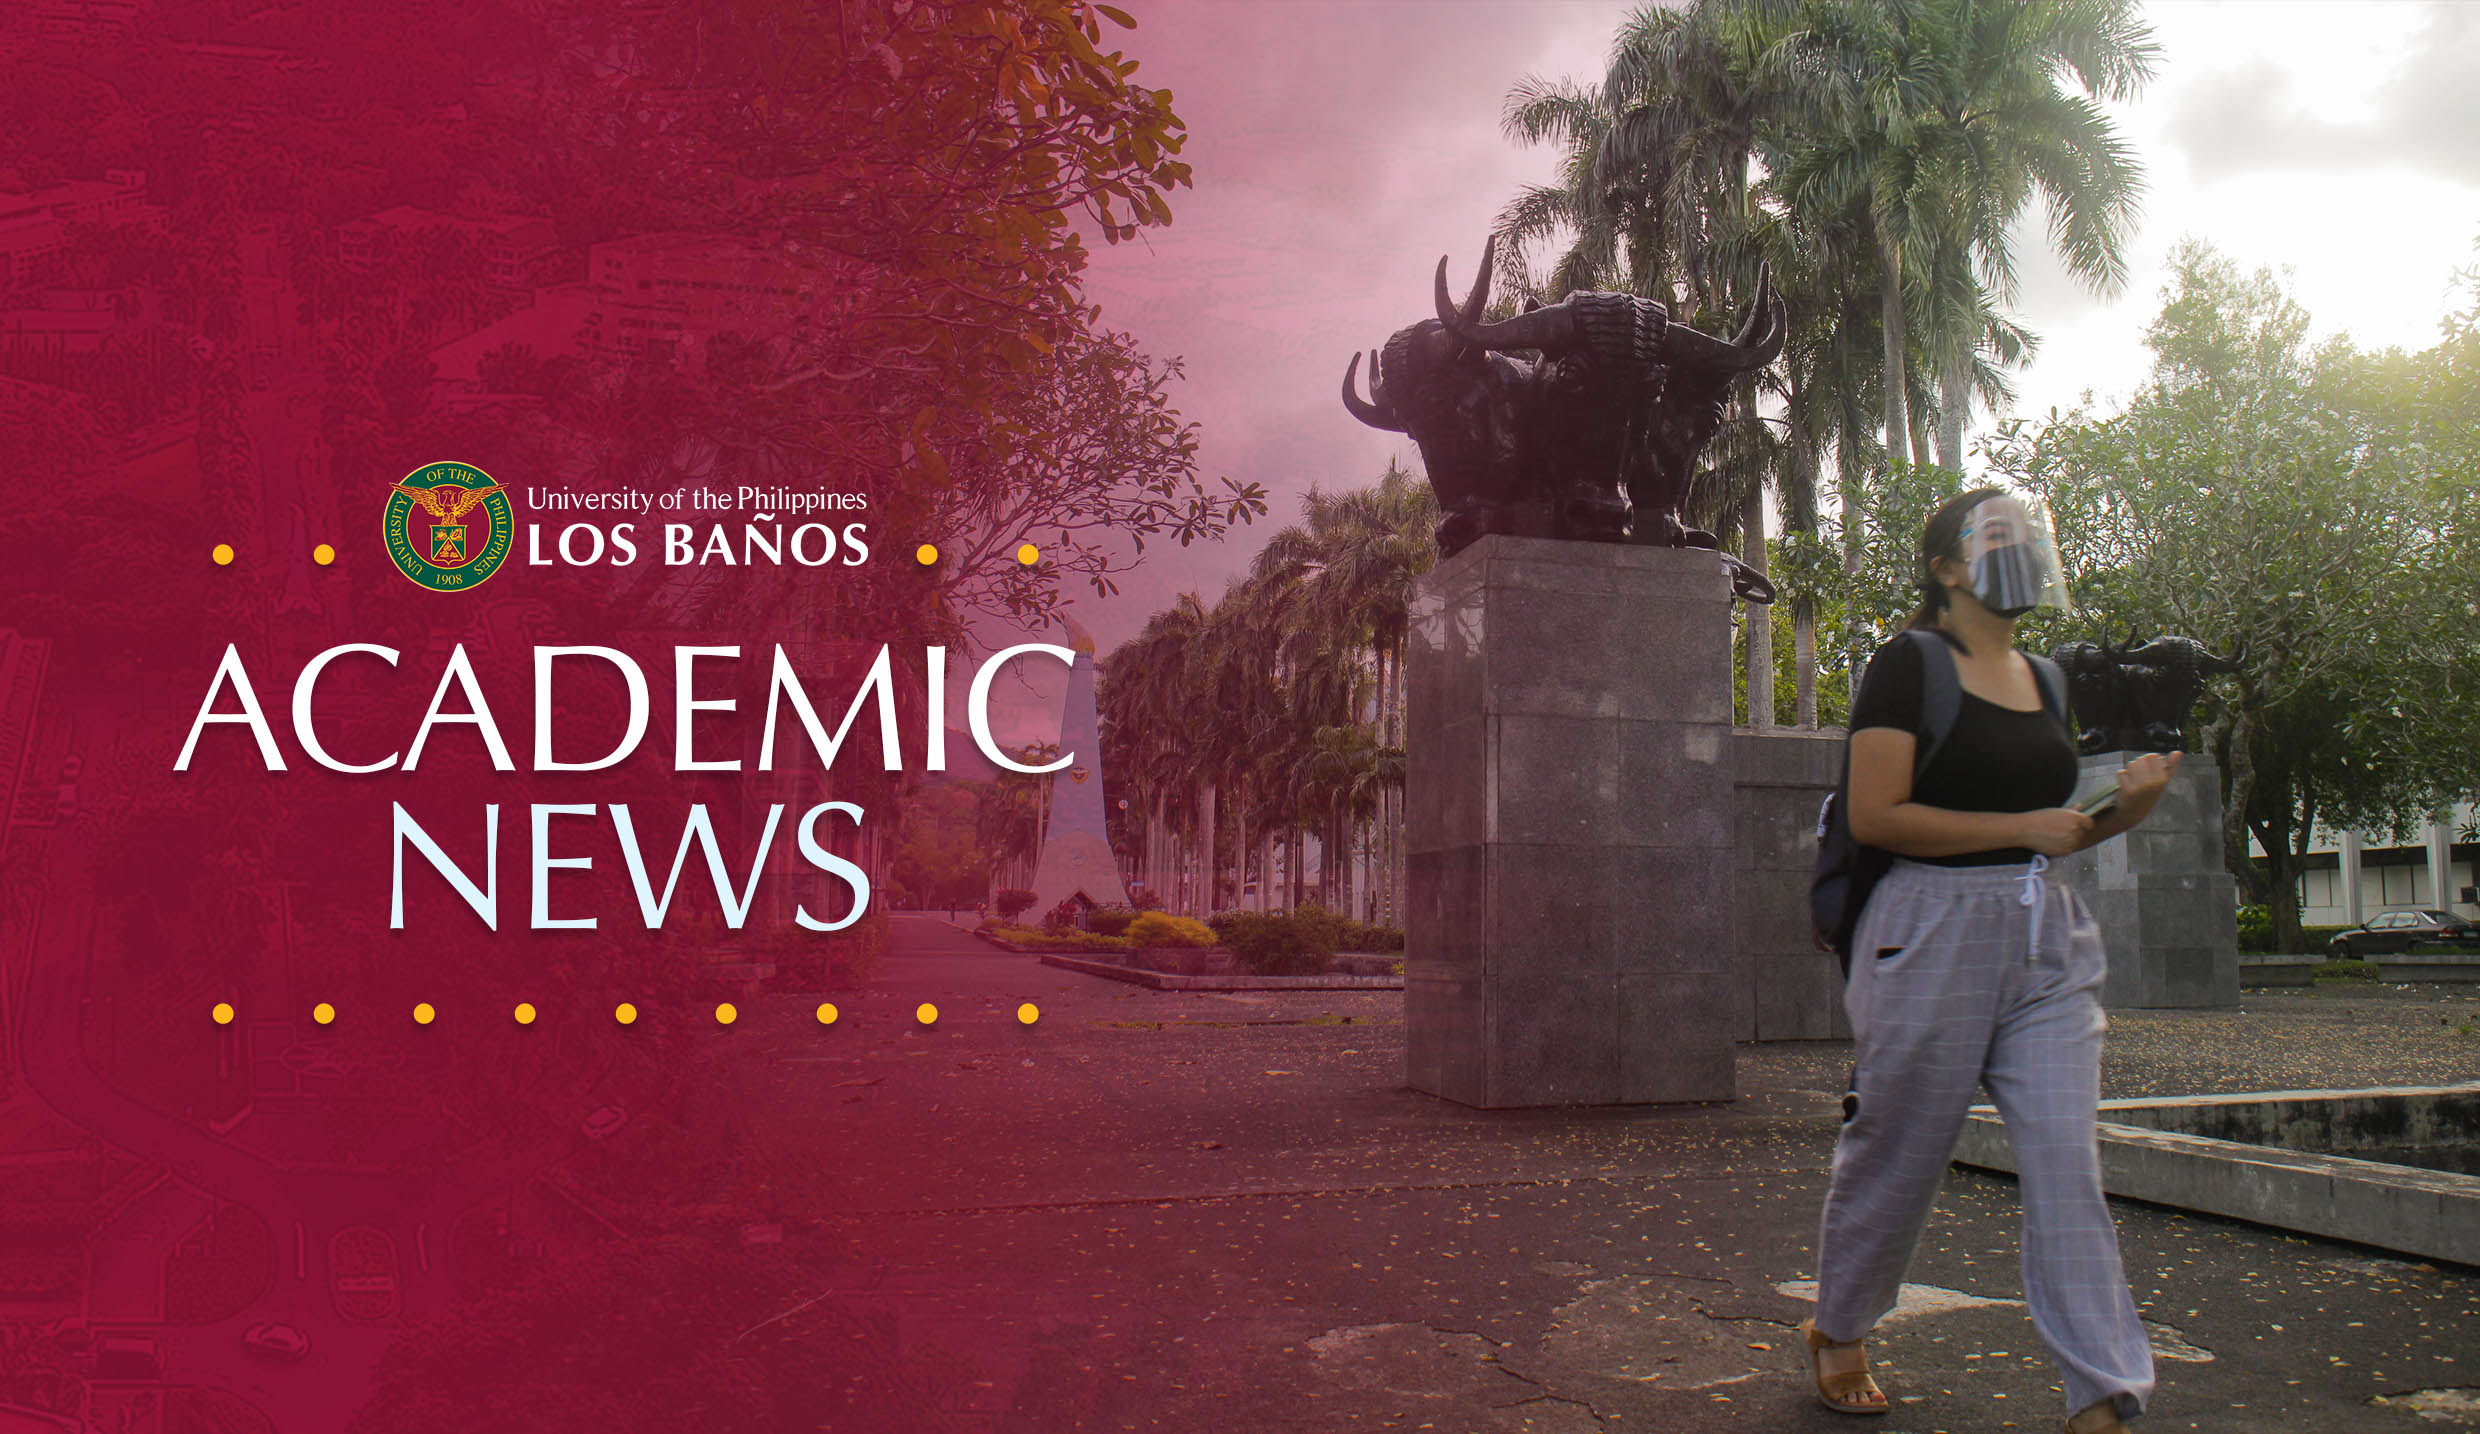 UPLB adds BS Mechanical Engineering to its curricular program offering